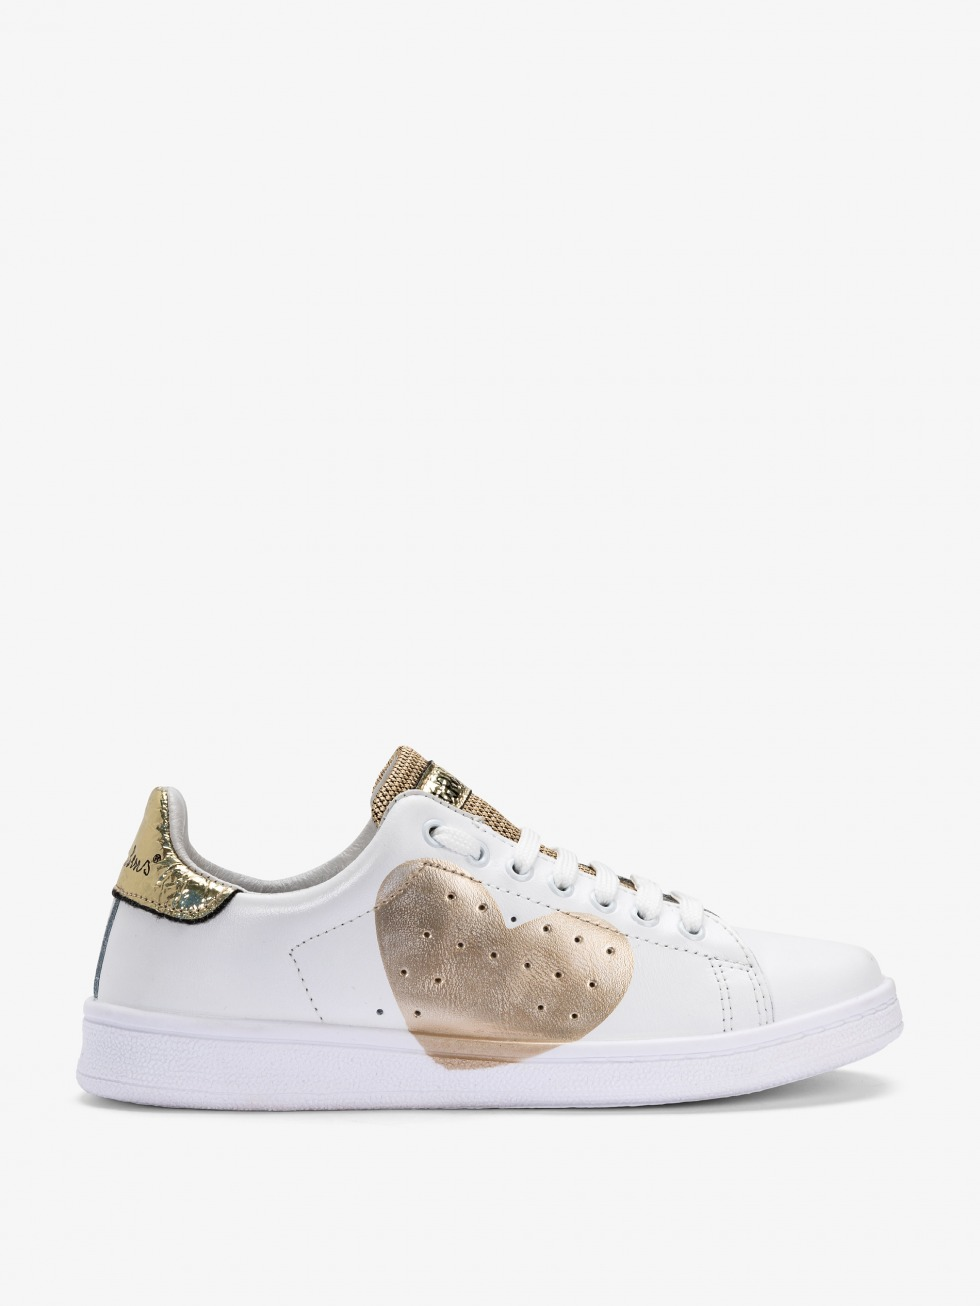 Sneakers Daiquiri - Cuore Space Gold